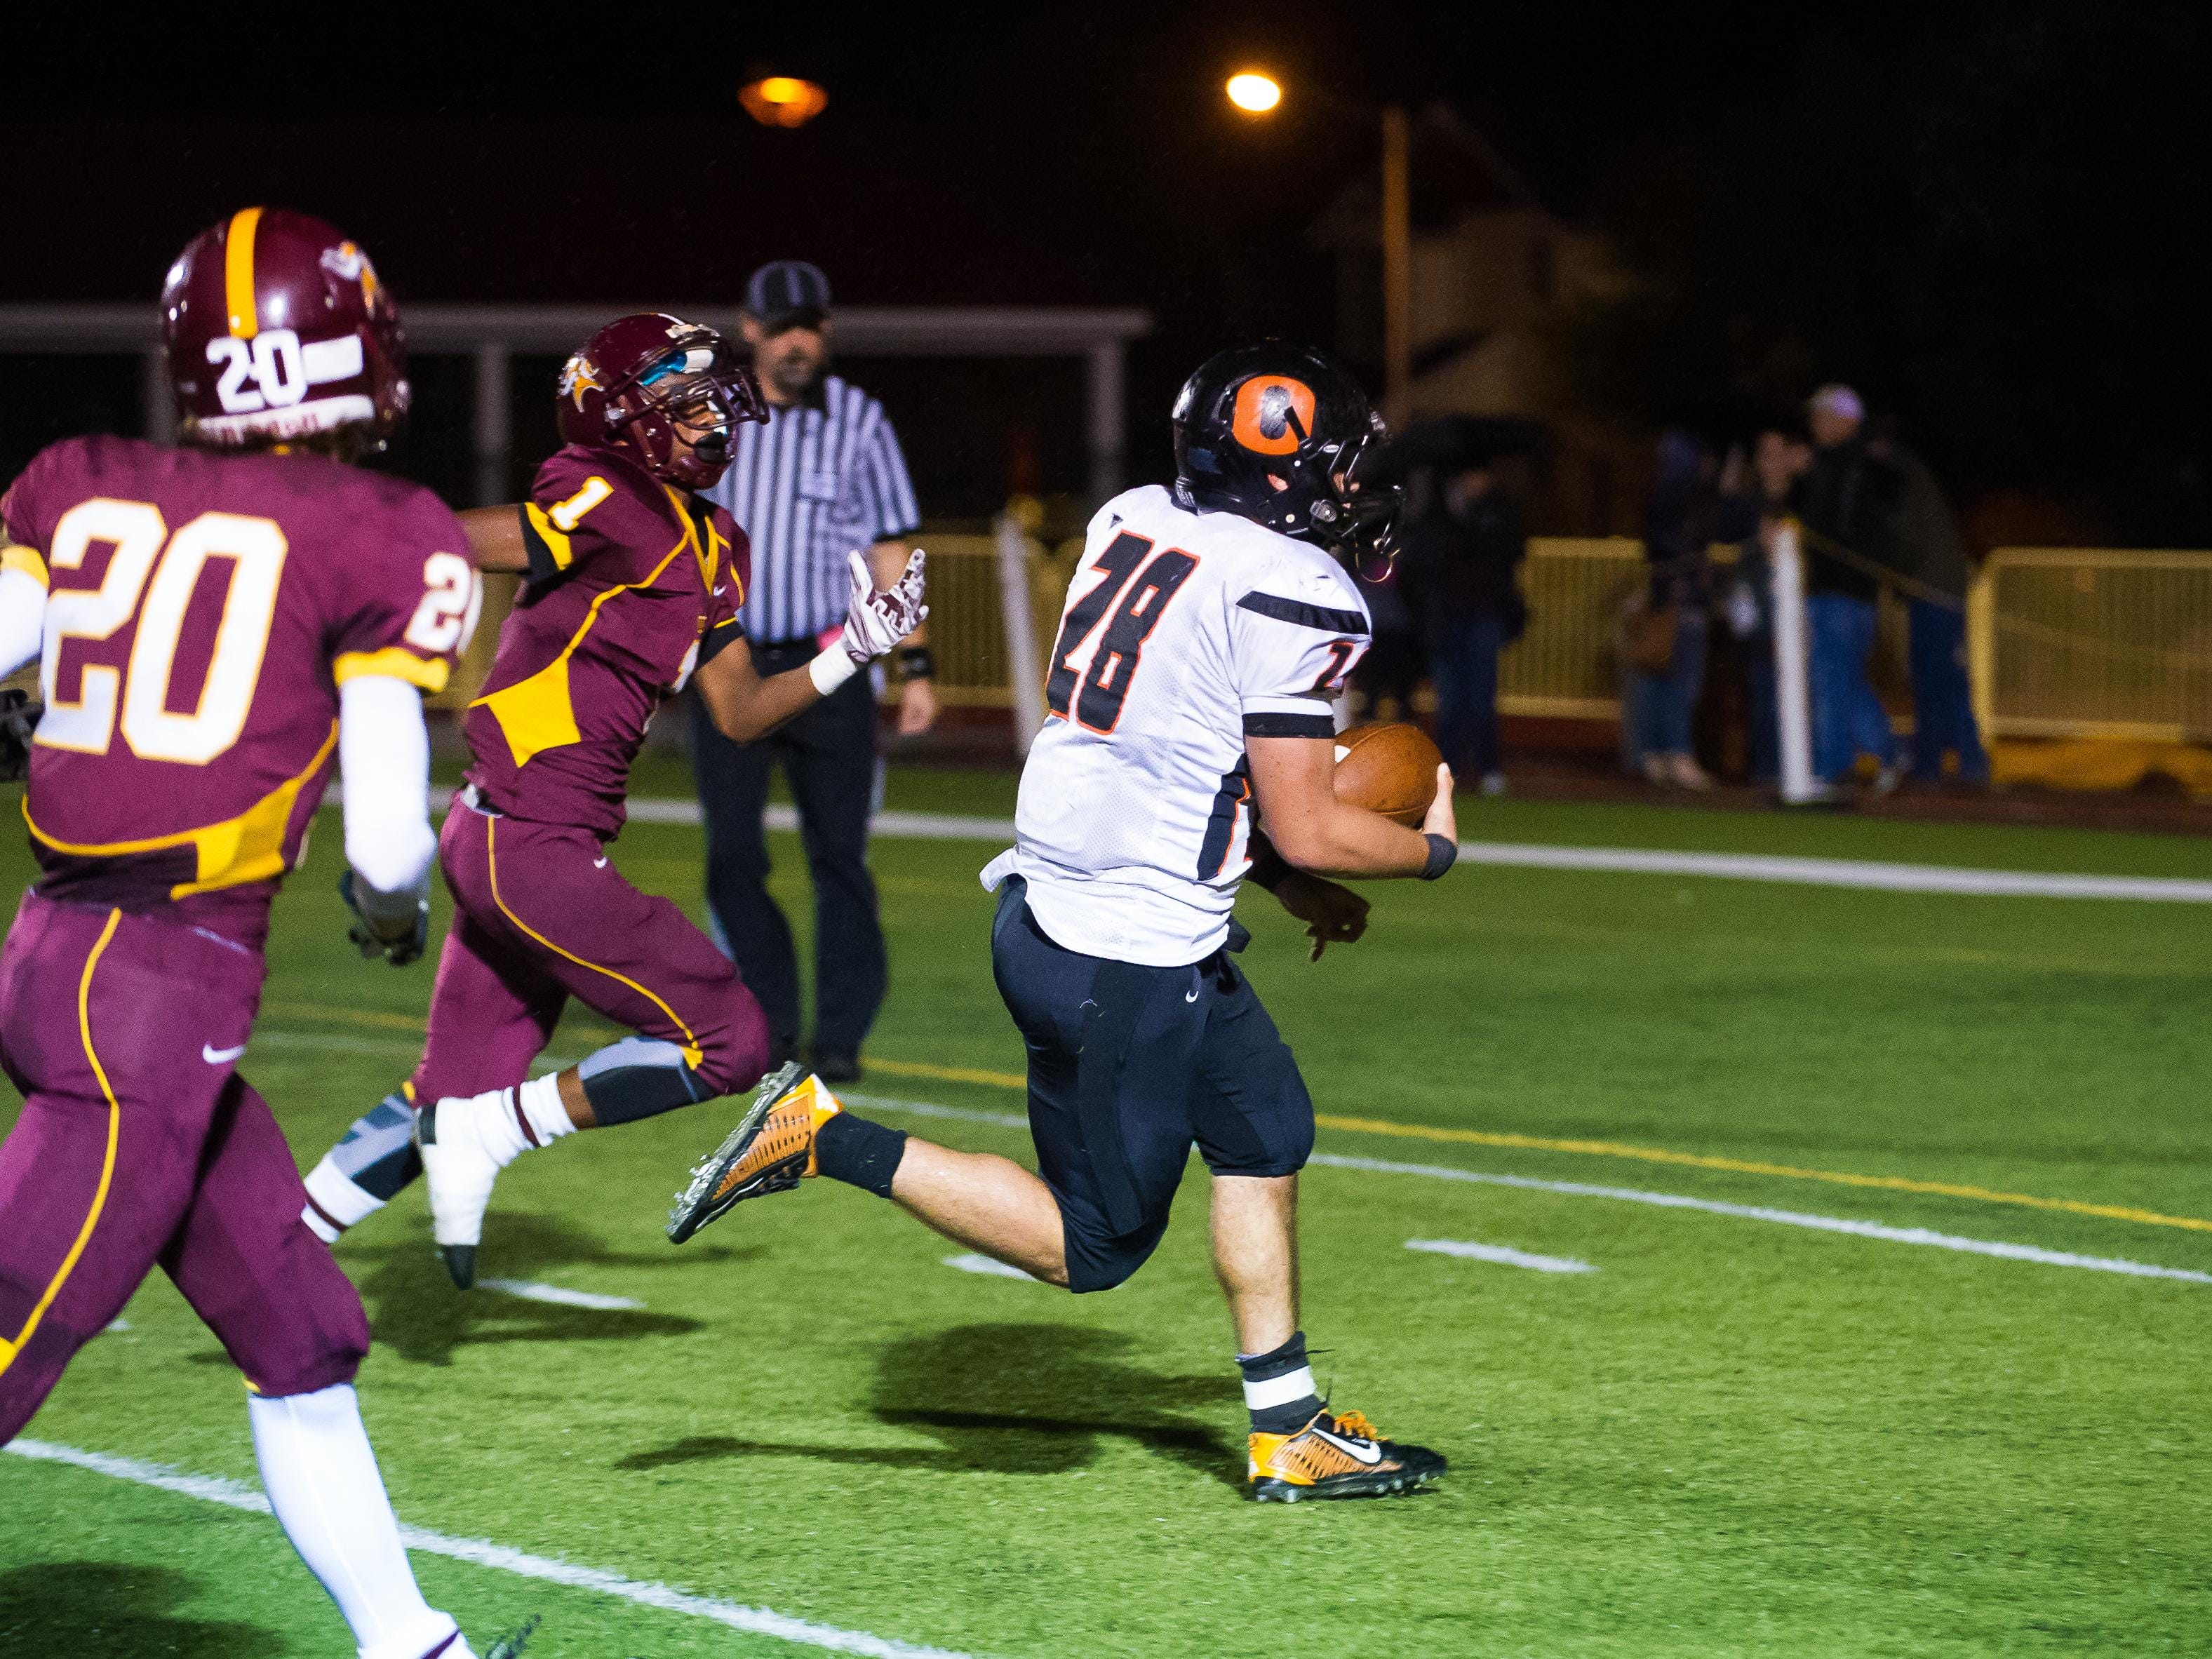 Sprague running back Anthony Nunn rushes for one of his five touchdowns Friday against Forest Grove on Friday, Sept. 26, 2015.